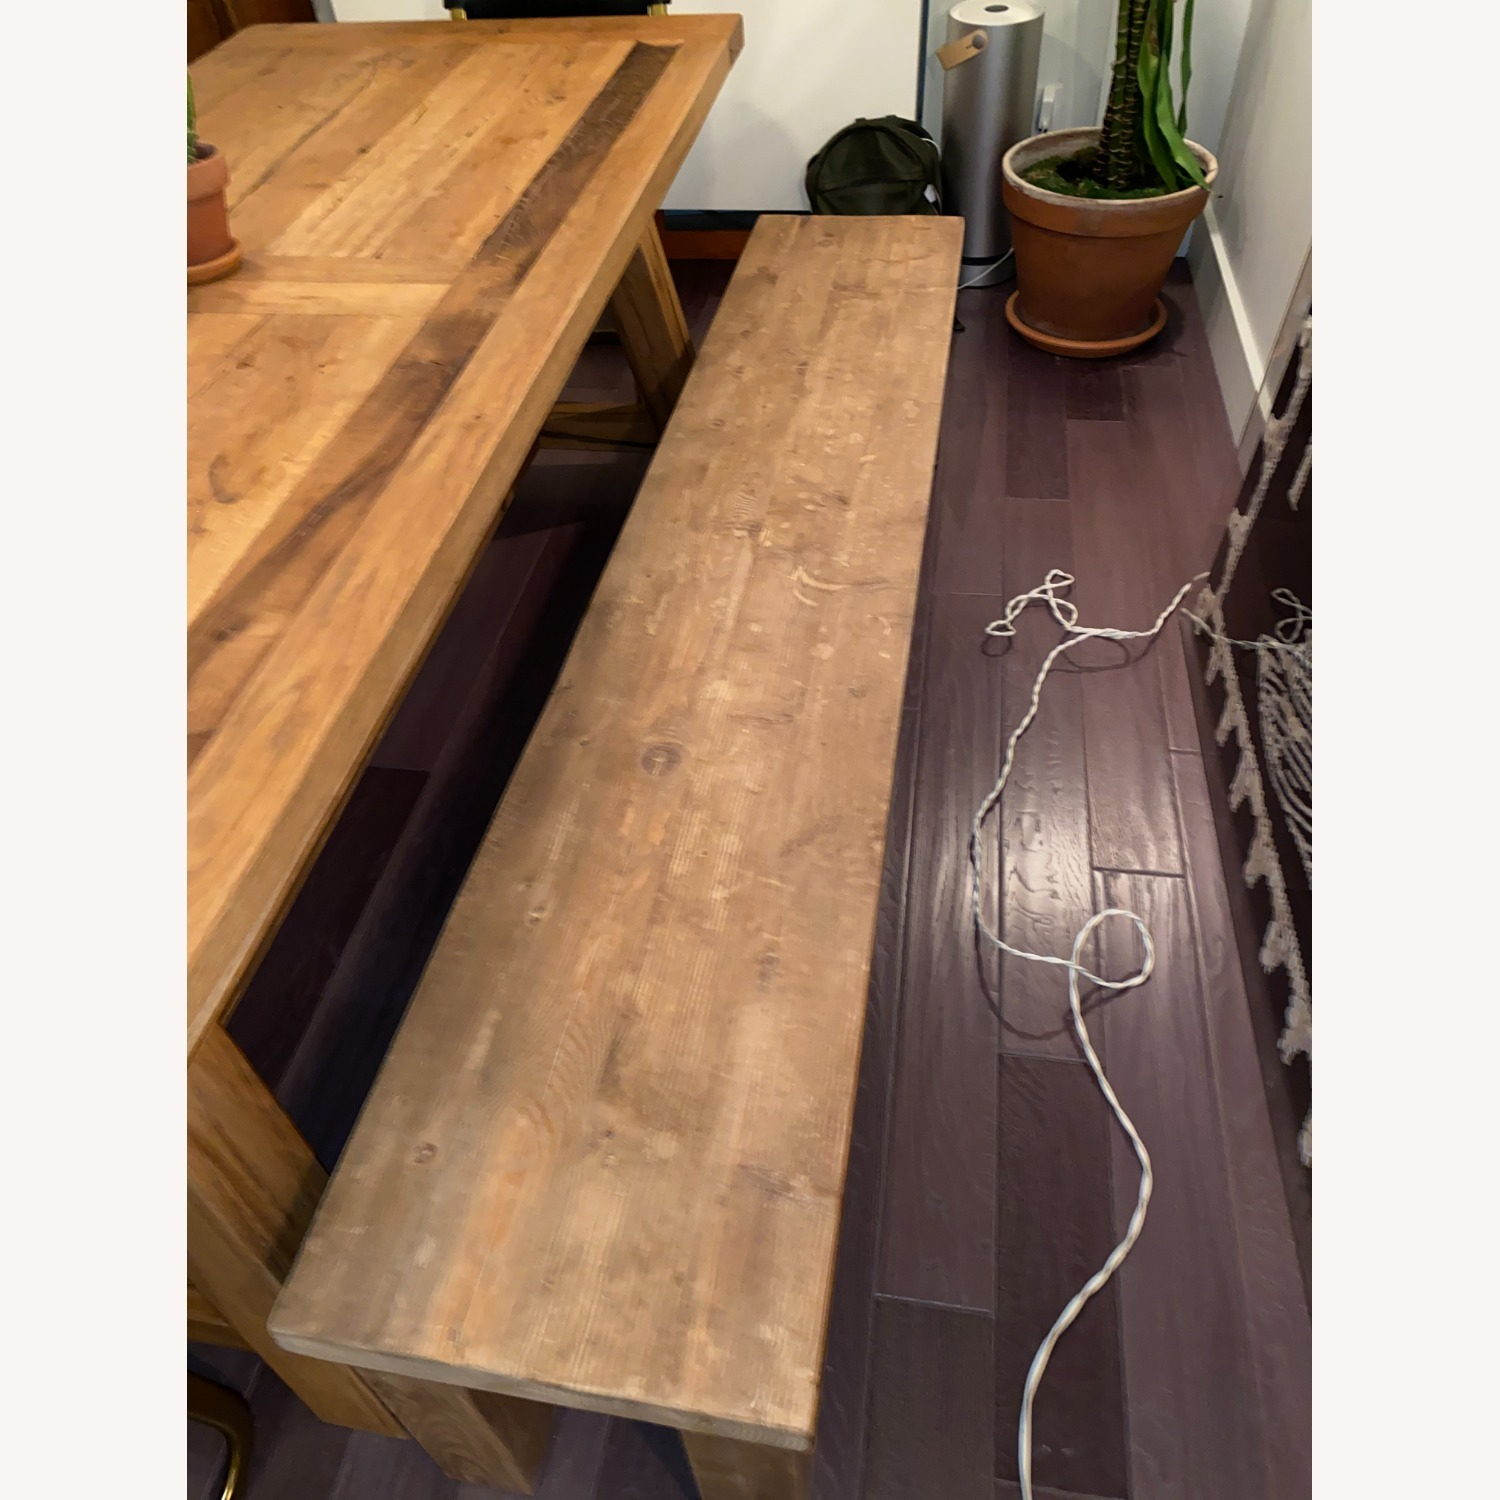 Restoration Hardware Russian Oak Table and Benches - image-6